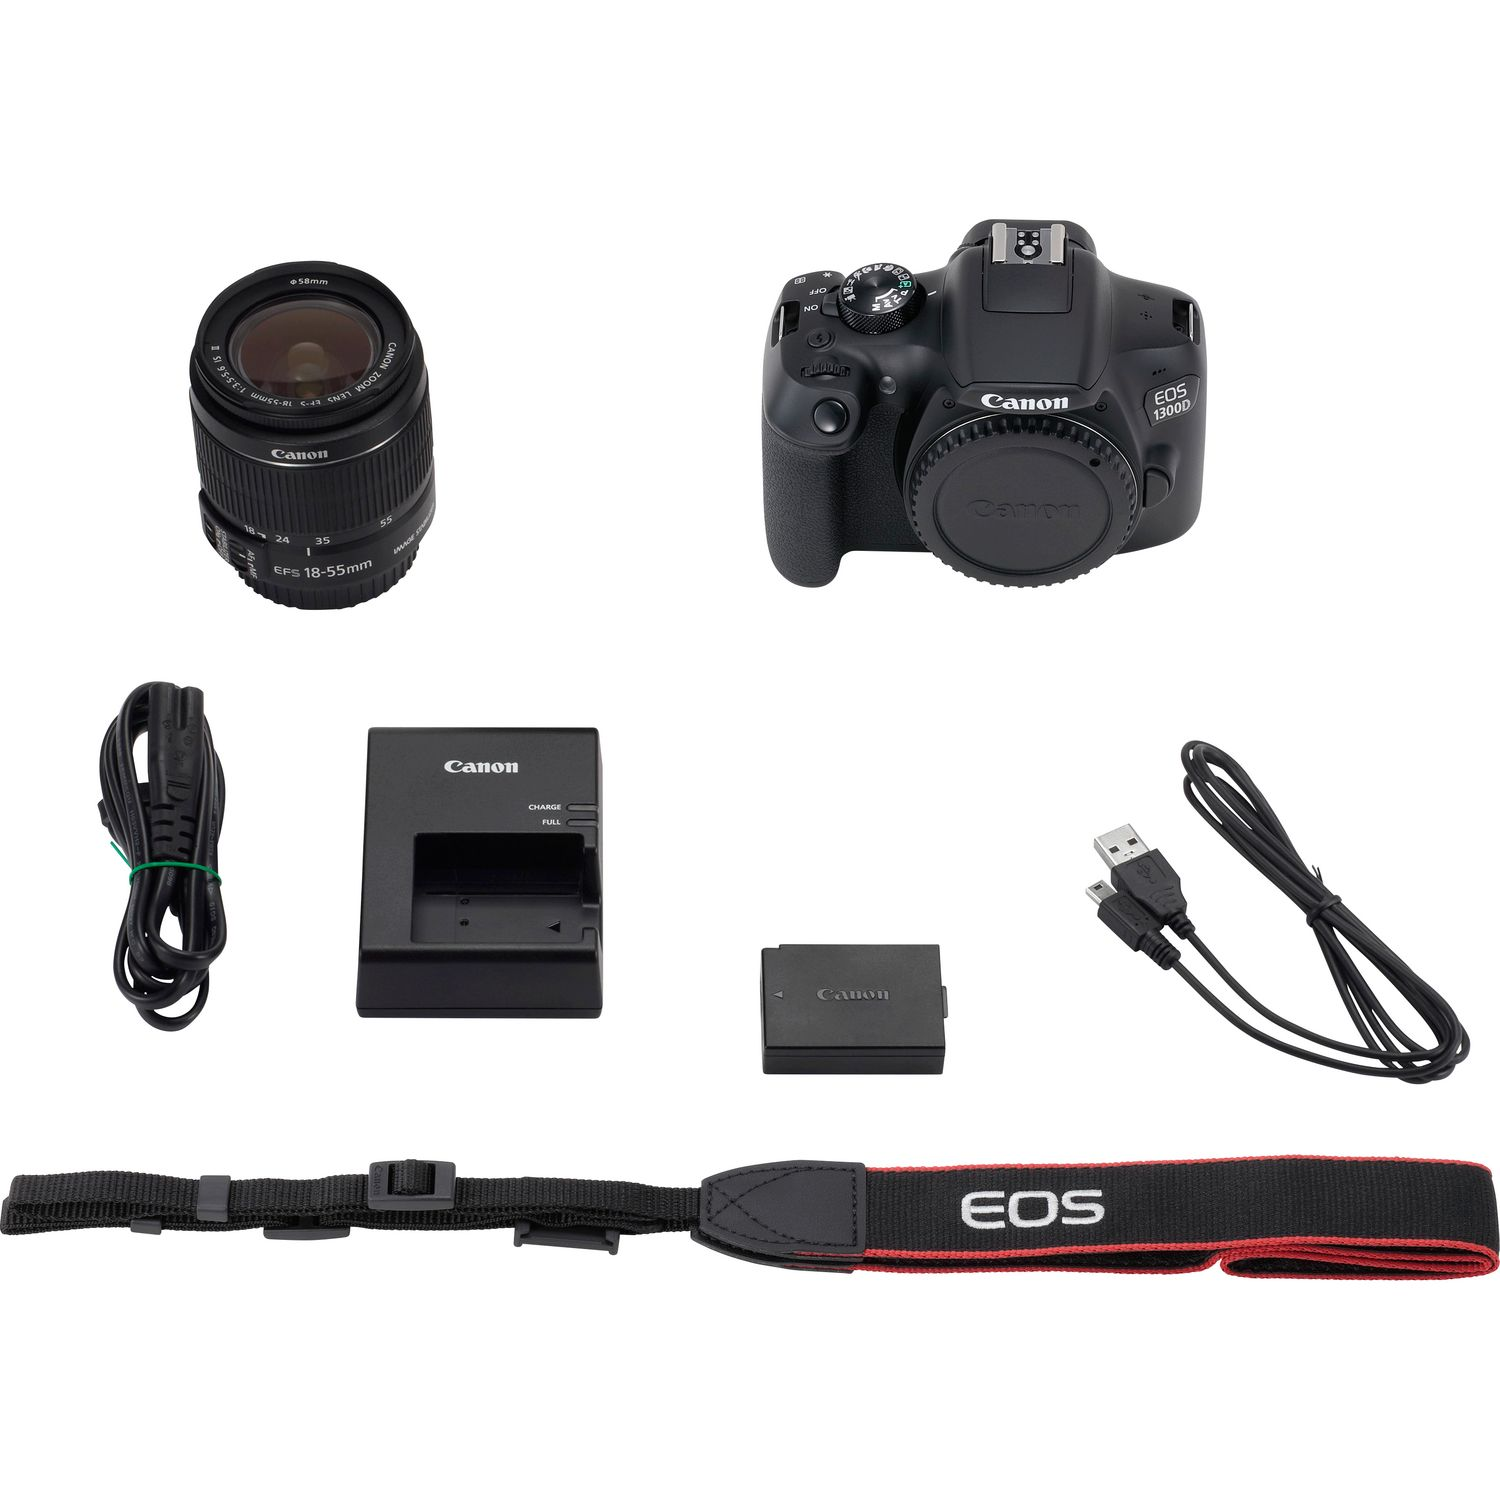 Buy Canon EOS 1300D + 18-55mm IS II Lens in Entry Level DSLR